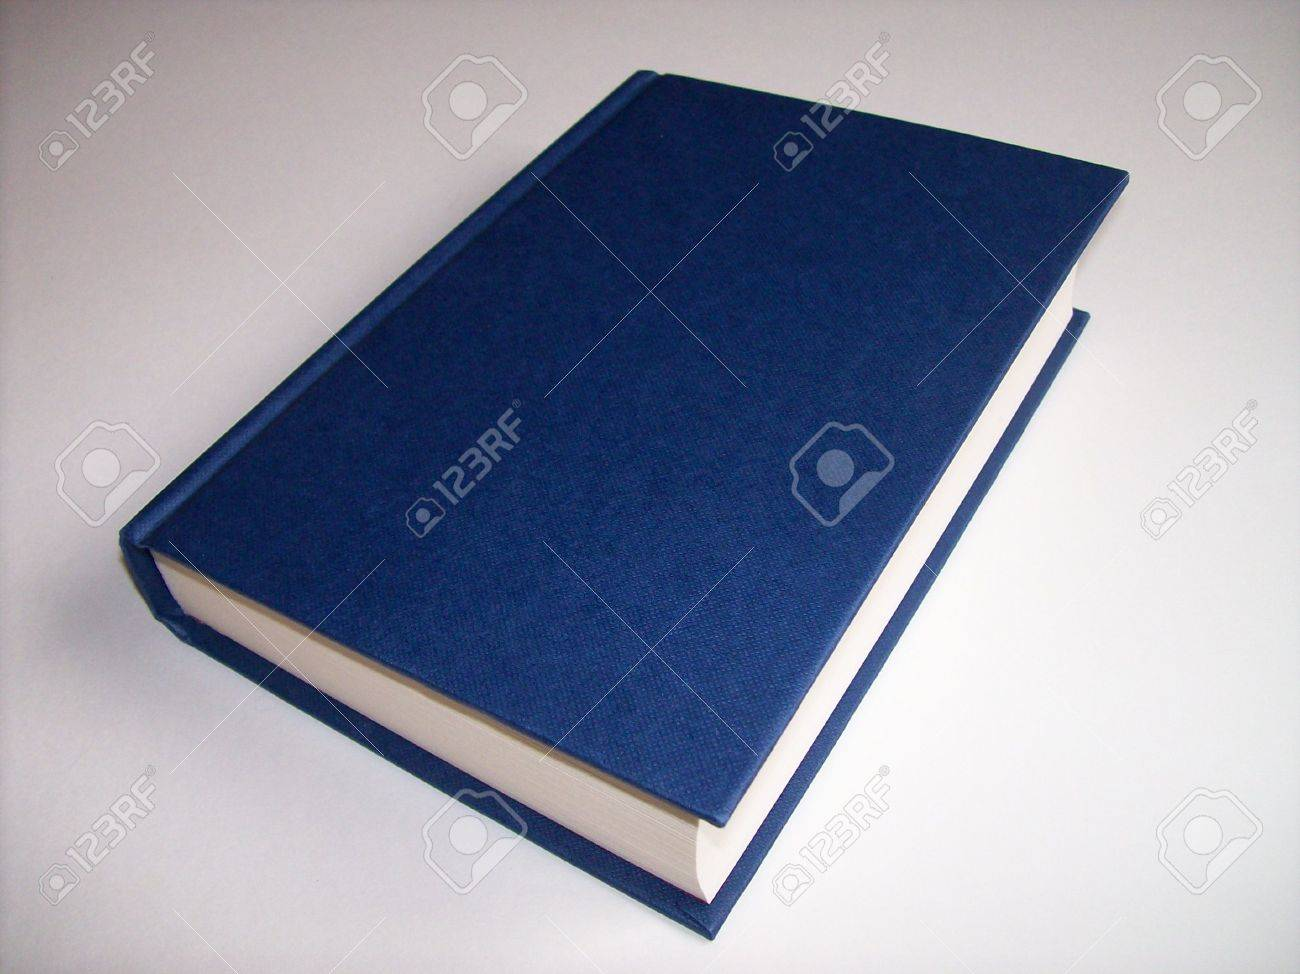 Close-up photo of a blue book on a white background Stock Photo - 7937223